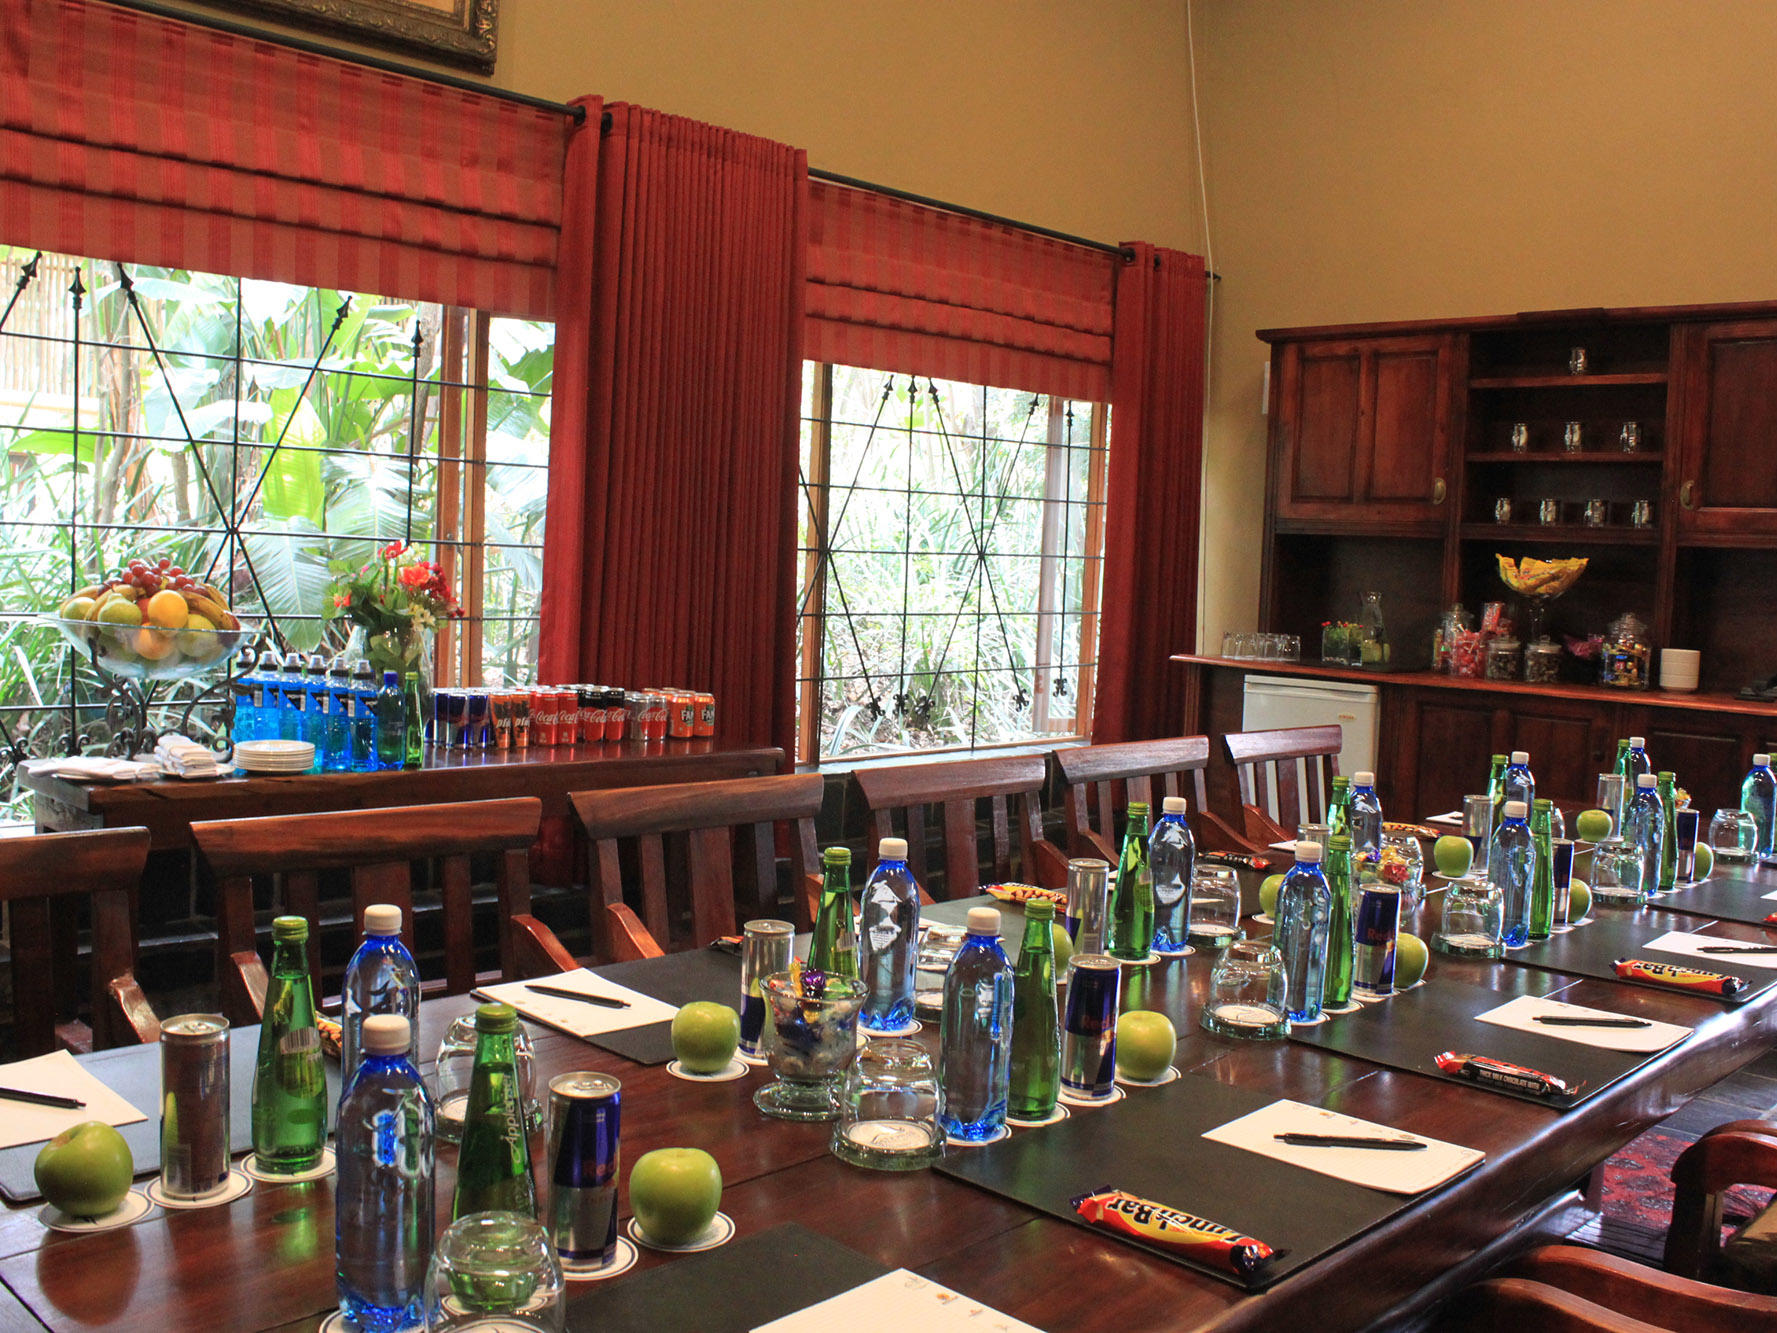 Conference in Boardroom set-up